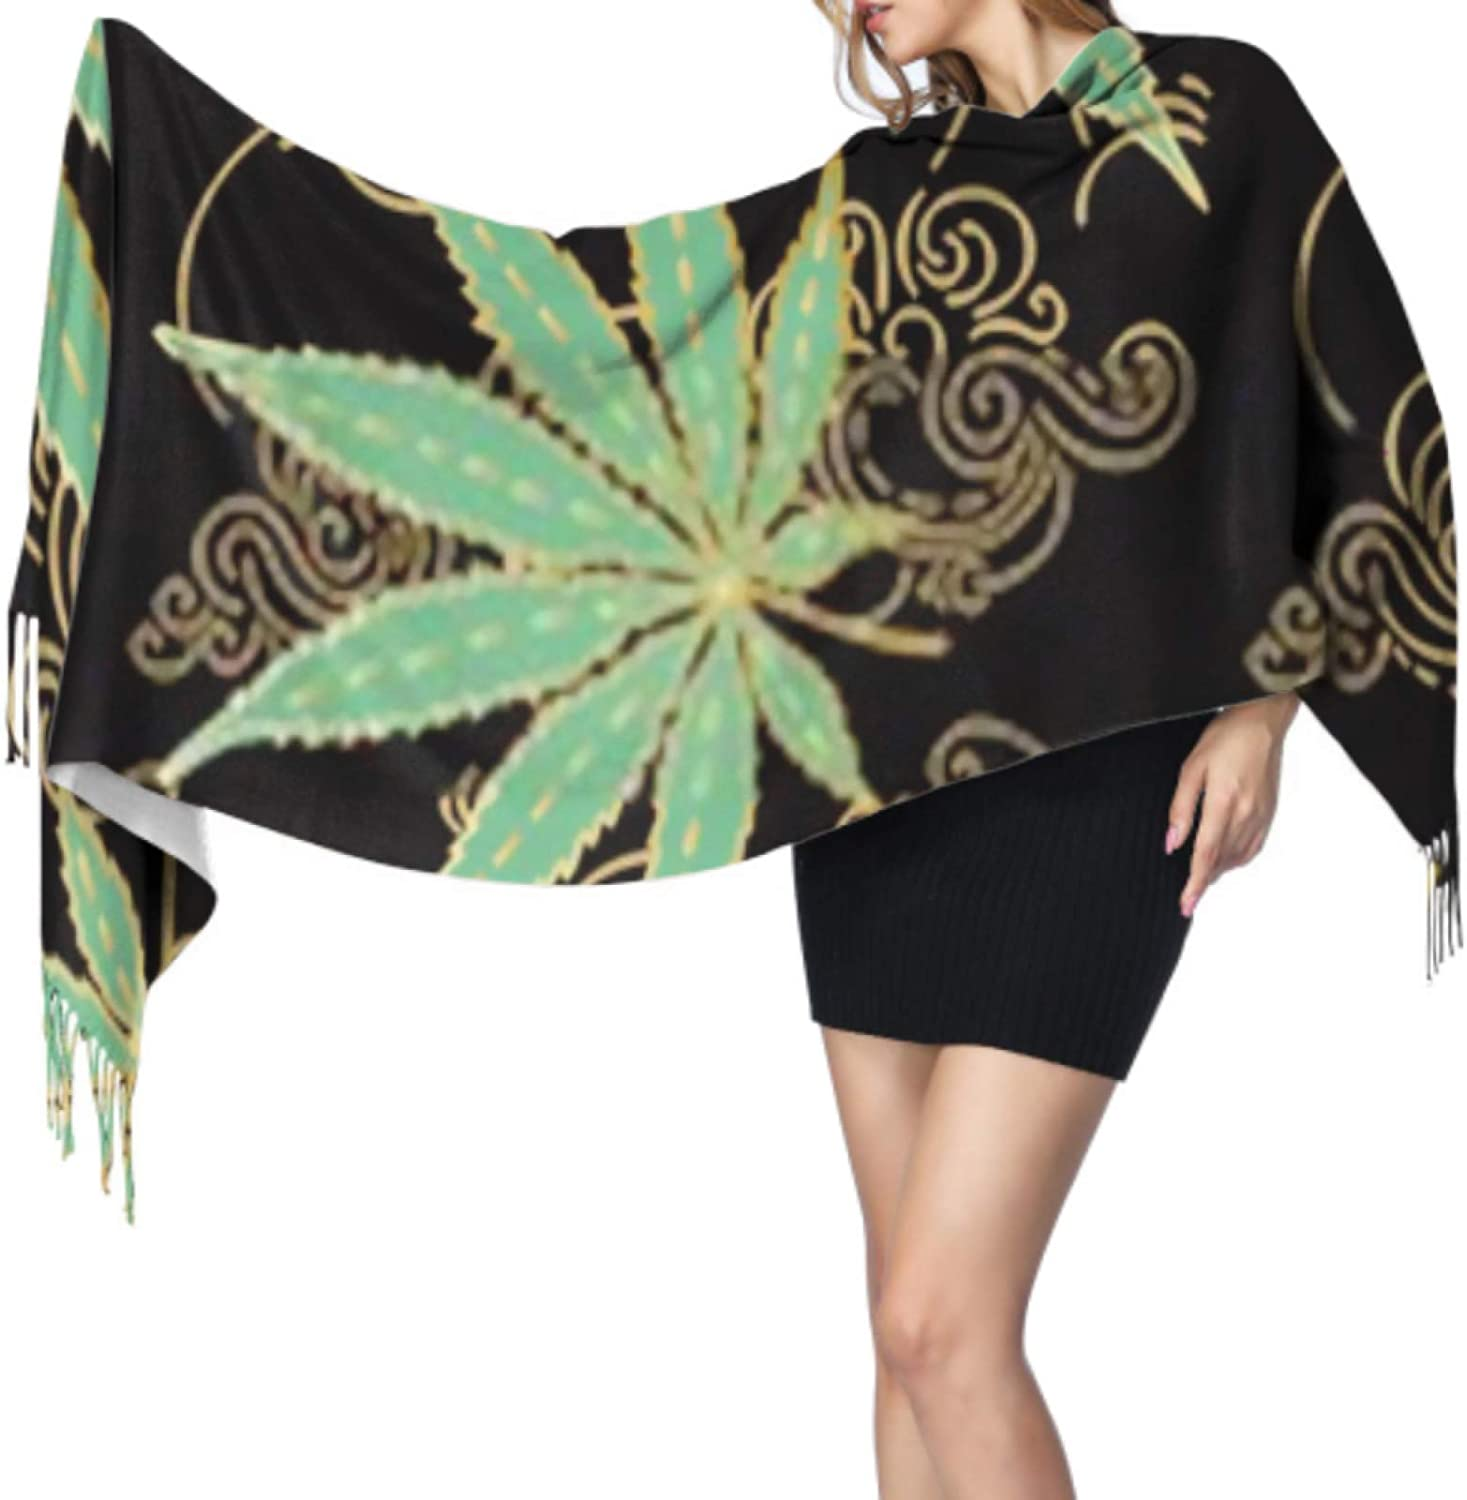 ZQYON Super Soft Classic Cashmere Feel Winter Scarf, Cannabis Marijuana Leaves Green Gold Hand Fashion Long Tassel Scarves for Men and Women